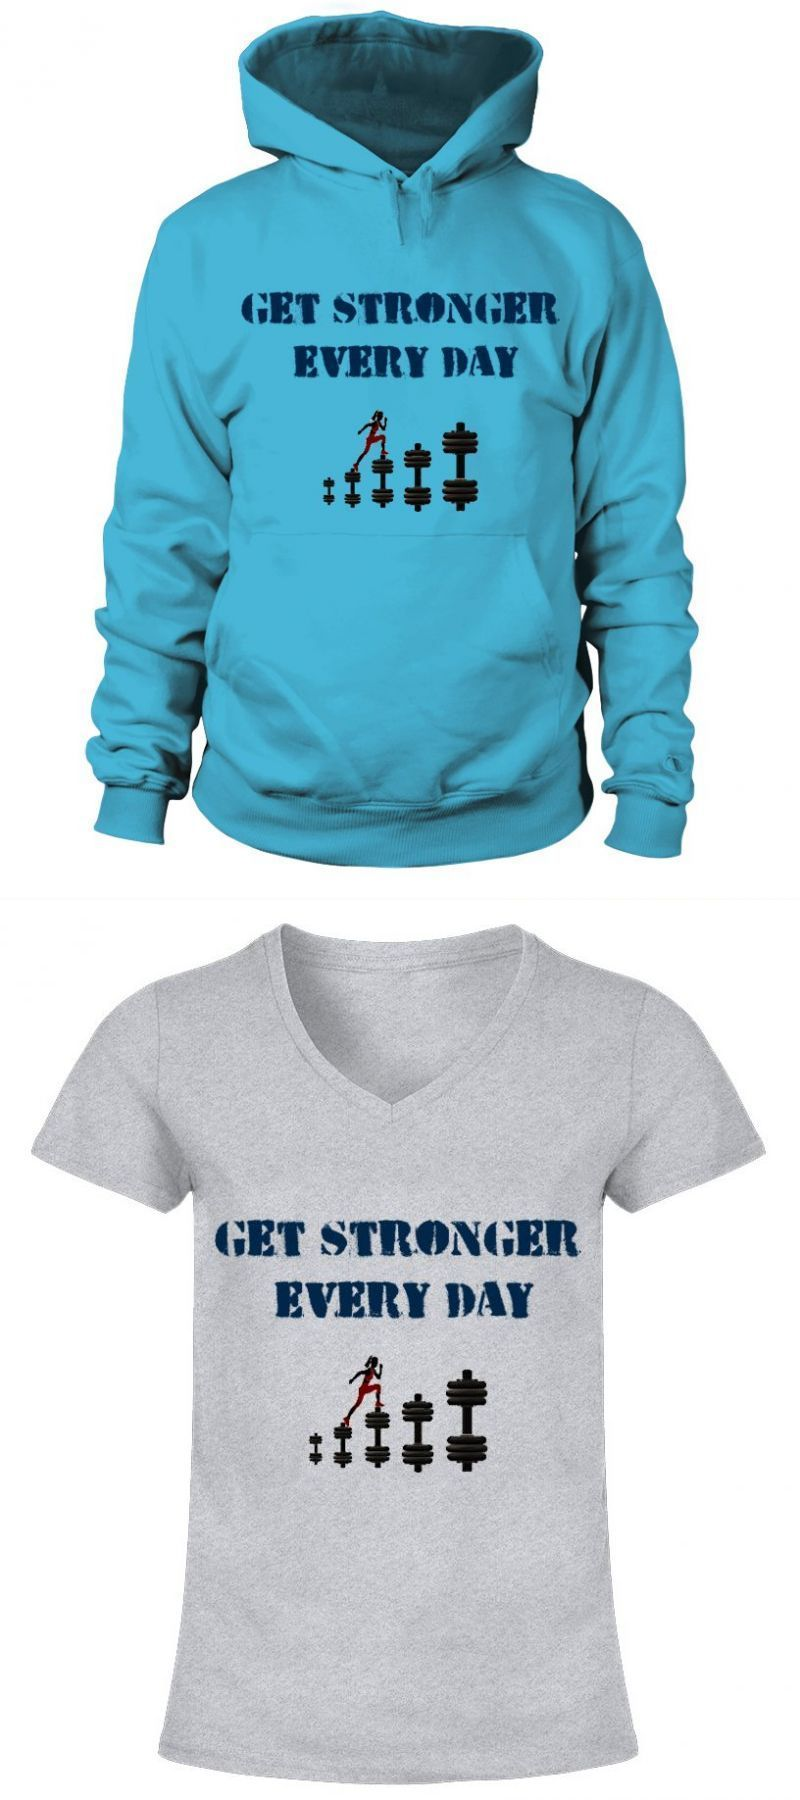 ac48db150698 T-shirts with fitness sayings get stronger every day goodlife fitness t  shirt  t-shirts  with  fitness  sayings  get  stronger  every  day   goodlife  shirt ...